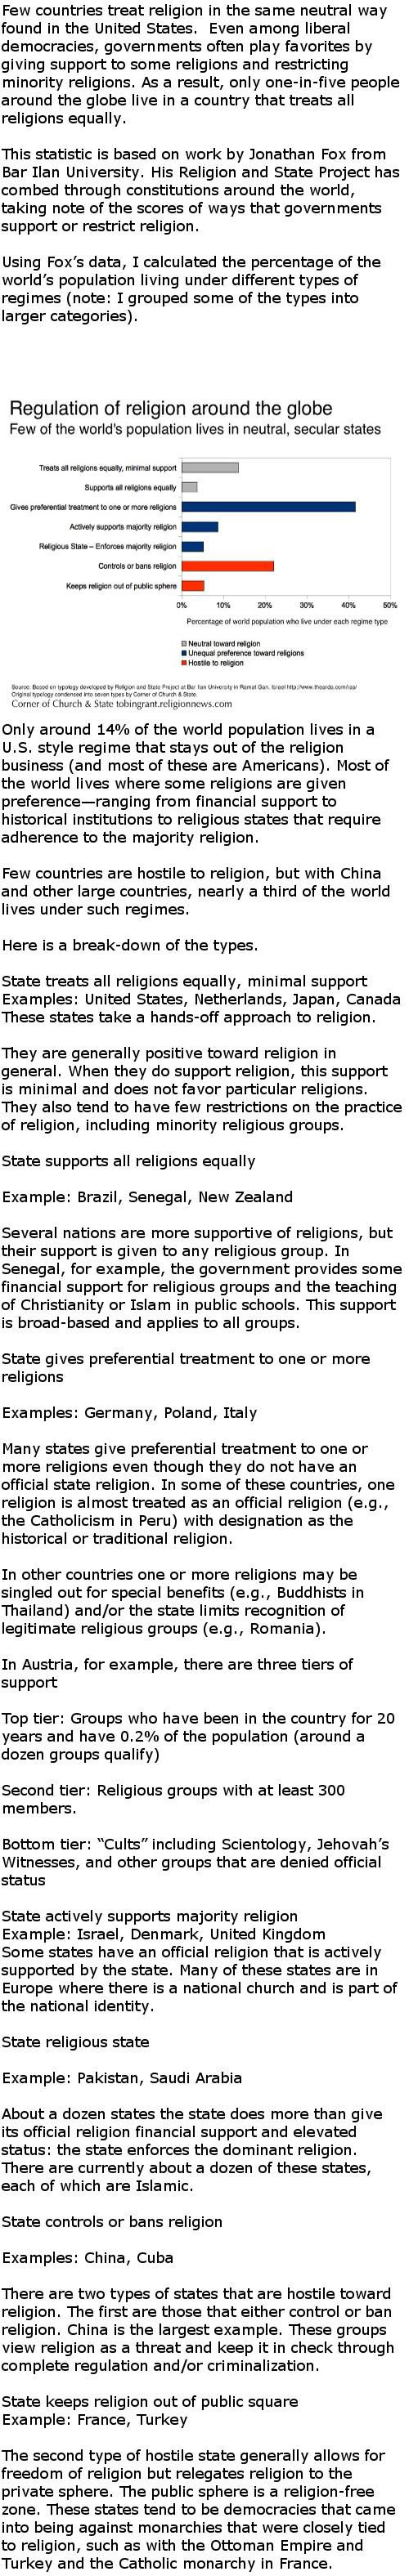 Few-around-the-globe-live-where-all-religions-are-free-equal